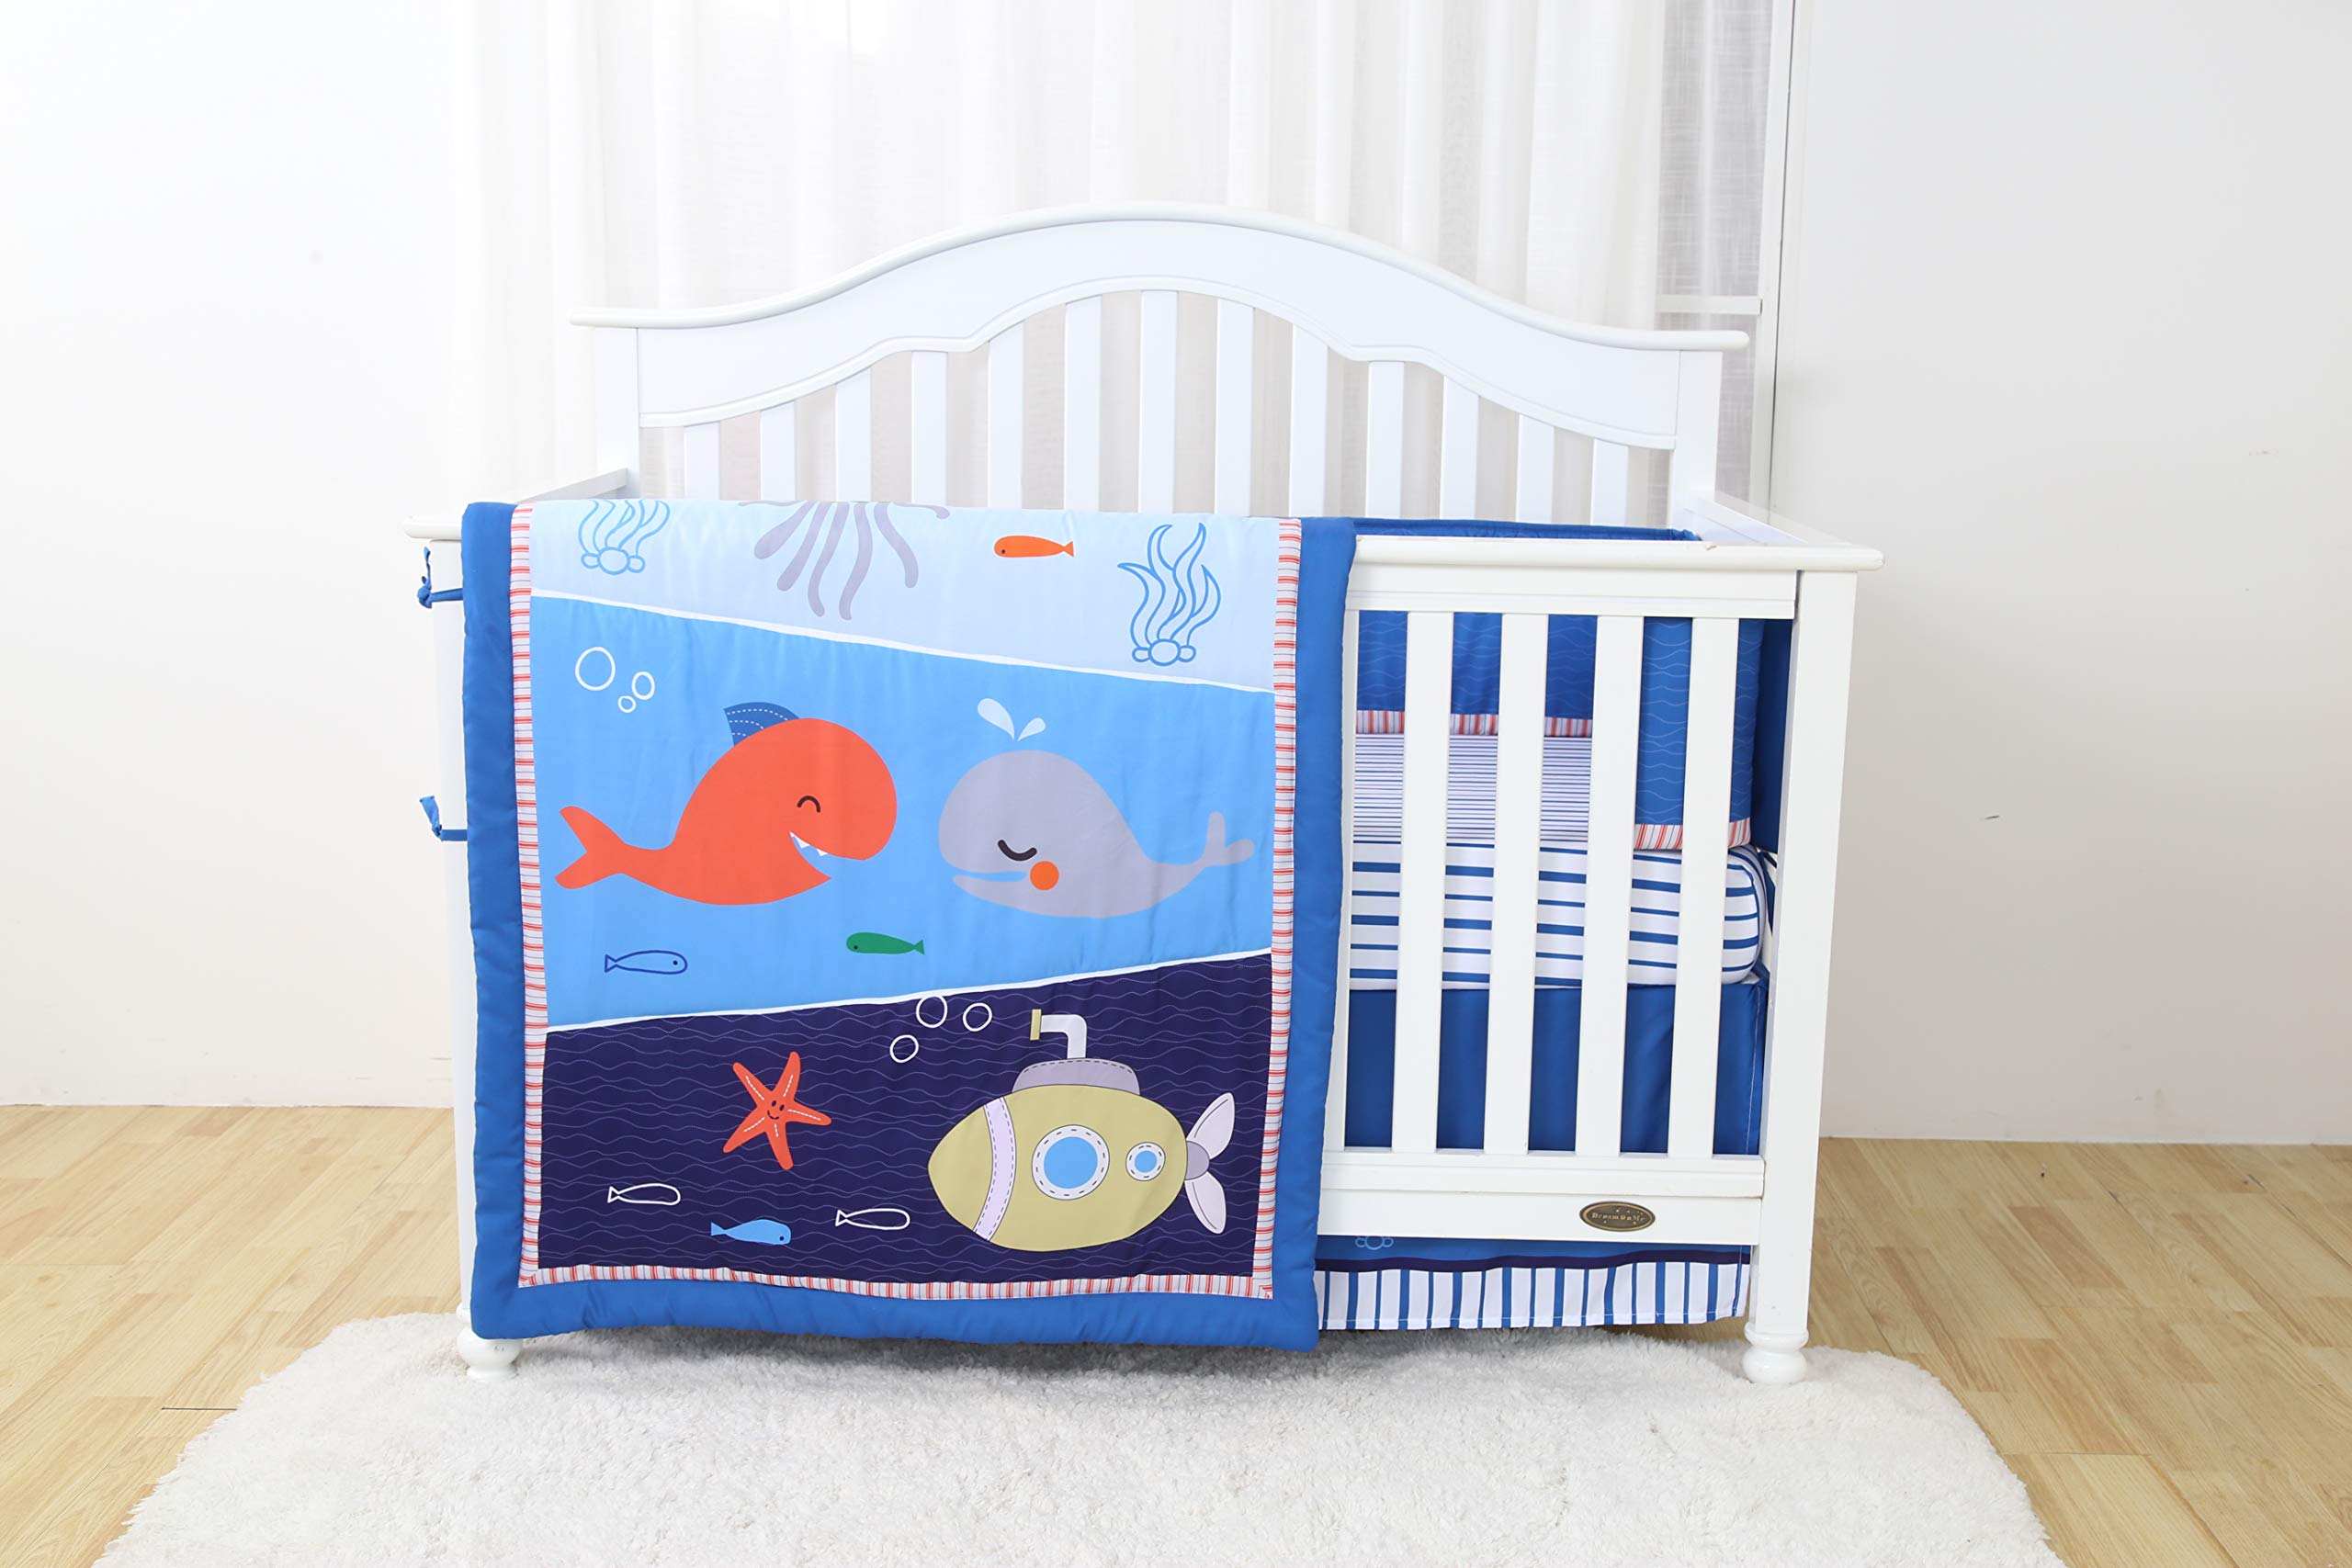 Linens And More Modern Luxury Quality 4 Piece Crib Bedding Sets for Girls and Boys, Set Includes, Fitted Sheet, Crib Bumper, Crib Skirt and Reversible Quilt (Whale) by Linens And More